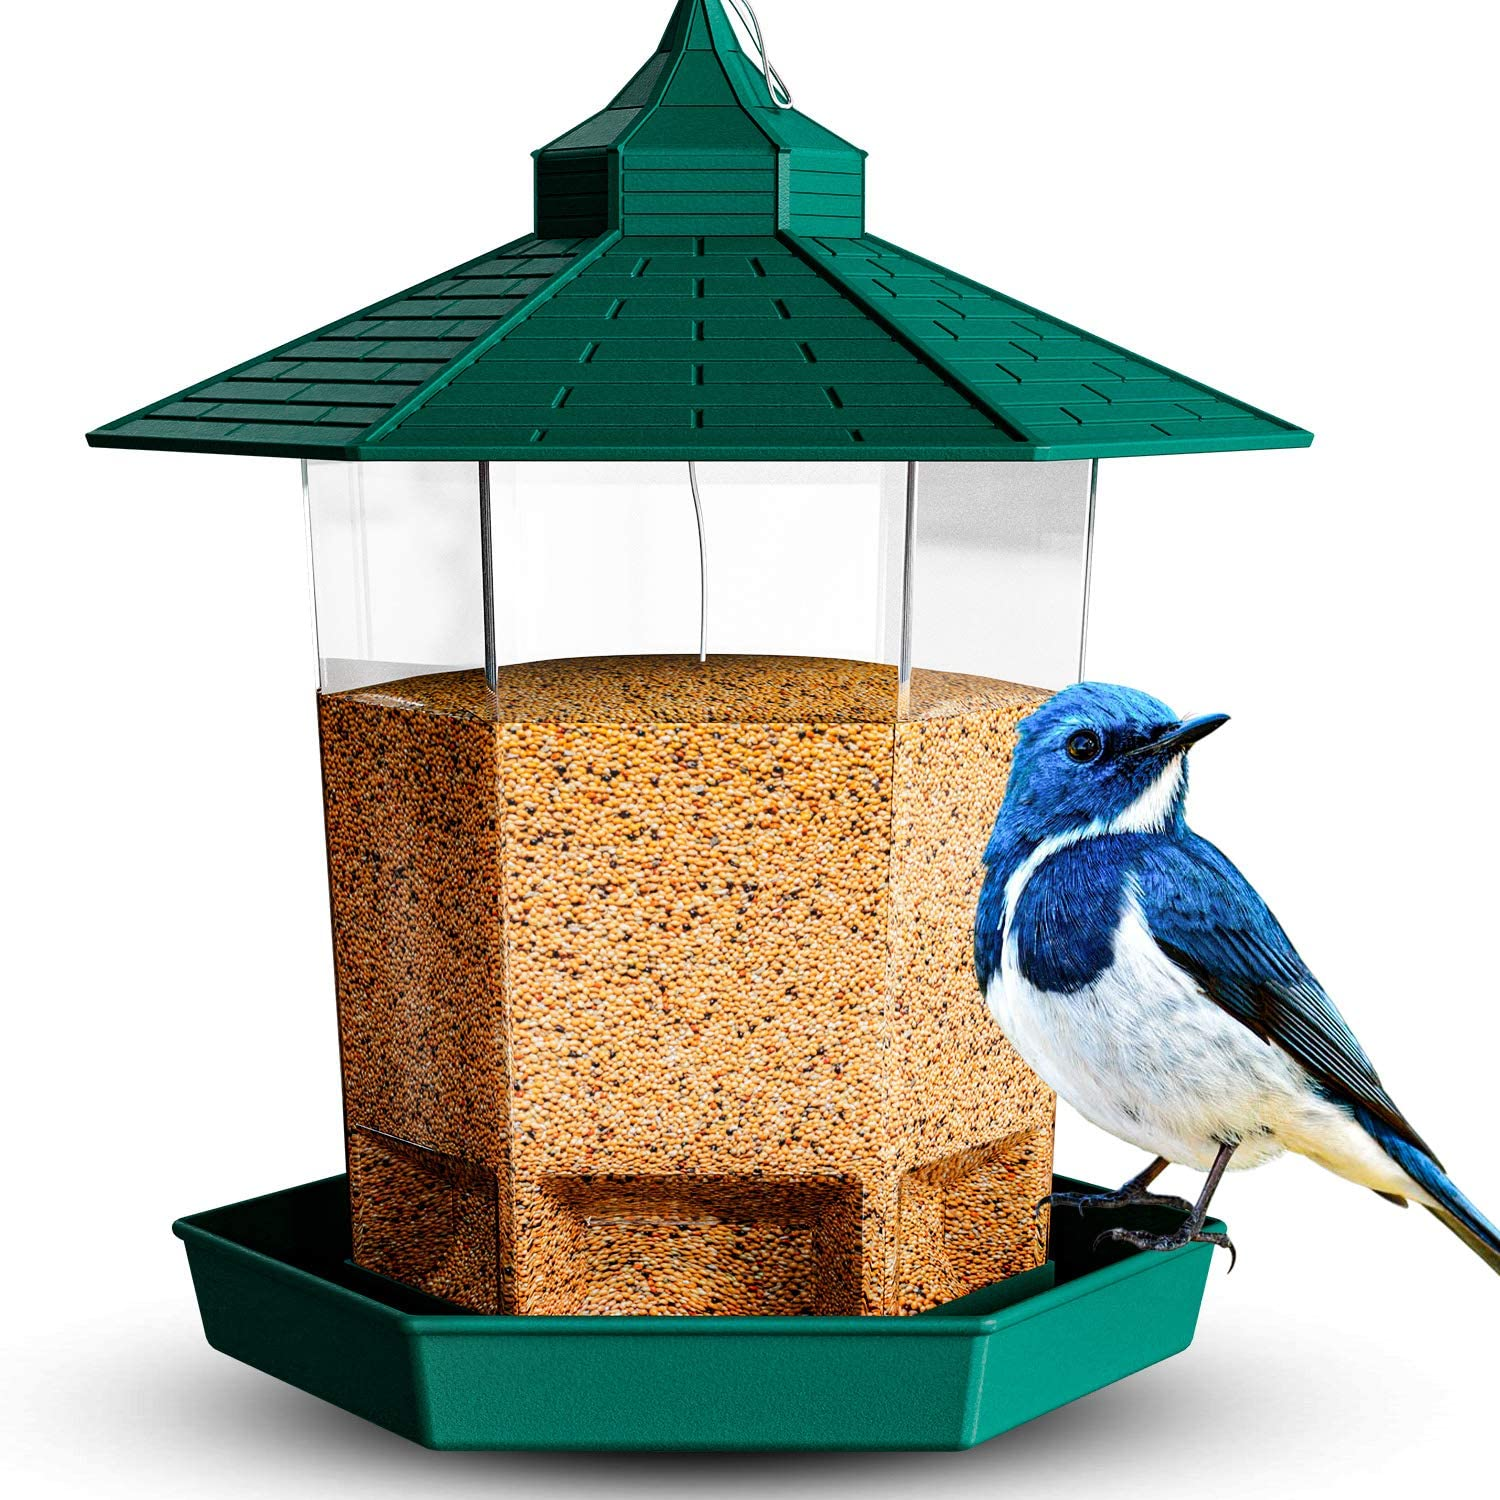 Hanging Hopper Bird Feeder - Can be Used as Decorative Ground Level or Hanging Bird Feeder Outside | Irresistibly Attracts Diverse Array of Beautiful Songbird Species | Durable for All Climates